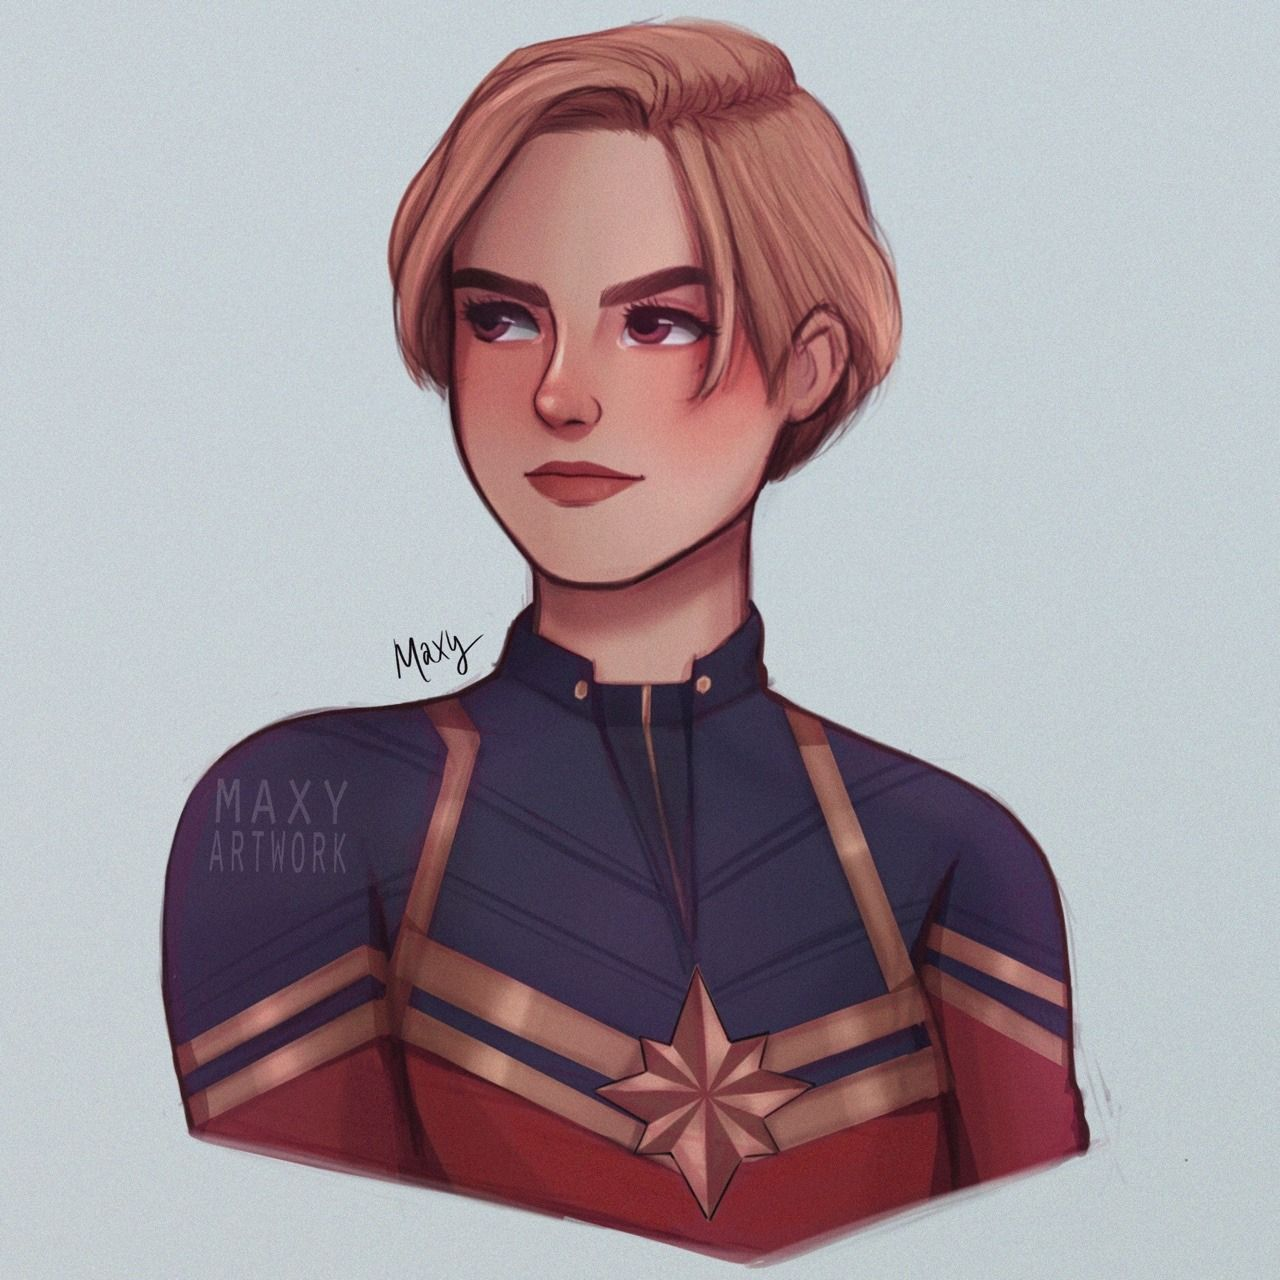 Carol Shows Up On Screen With Short Hair Me Won T Shut Up About It The Rest Of The Movie Captain Marvel Captain Marvel Carol Danvers Marvel Art